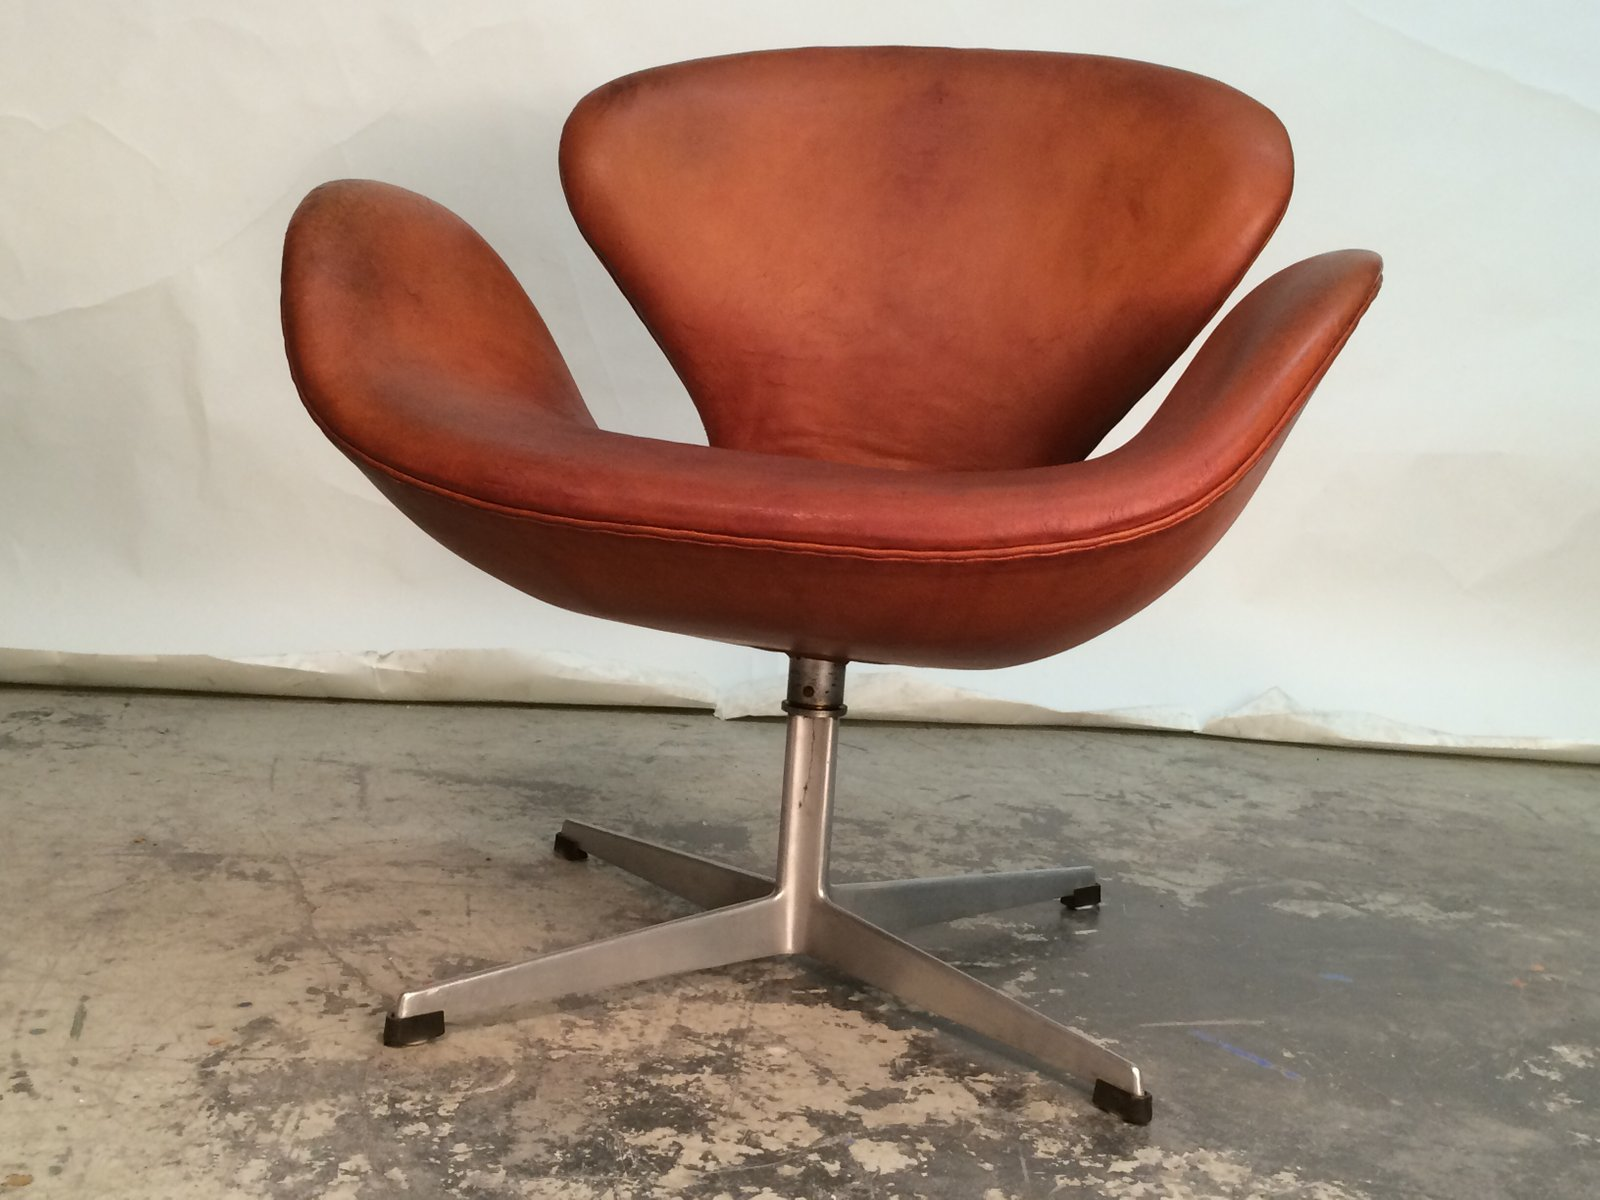 vintage egg chair custom dining room covers swan by arne jacobsen for fritz hansen, 1960 sale at pamono